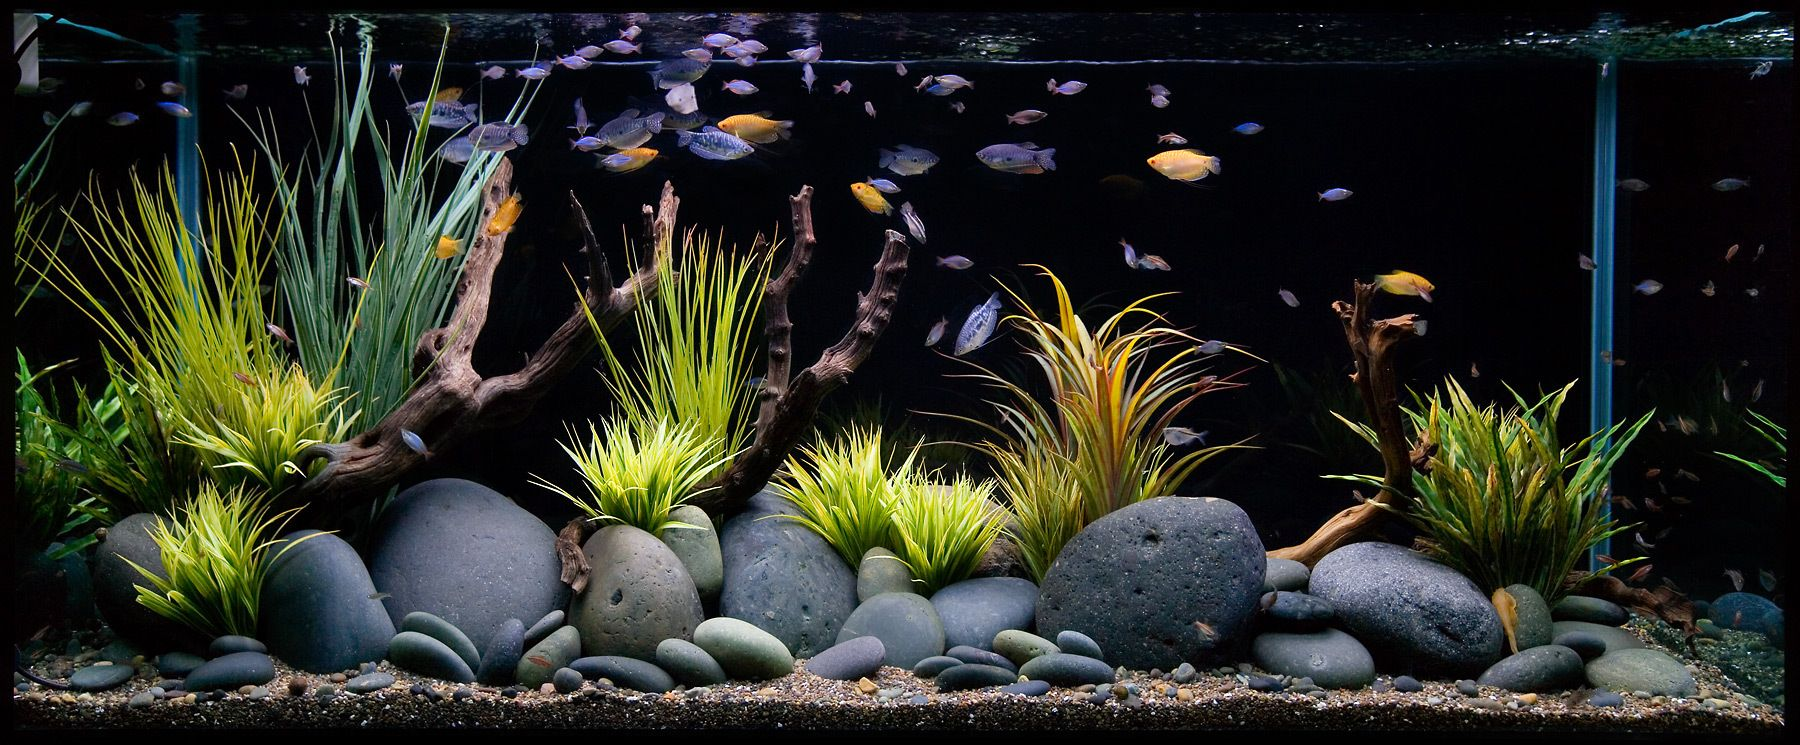 An Aquascaped Aquarium featuring Gourami